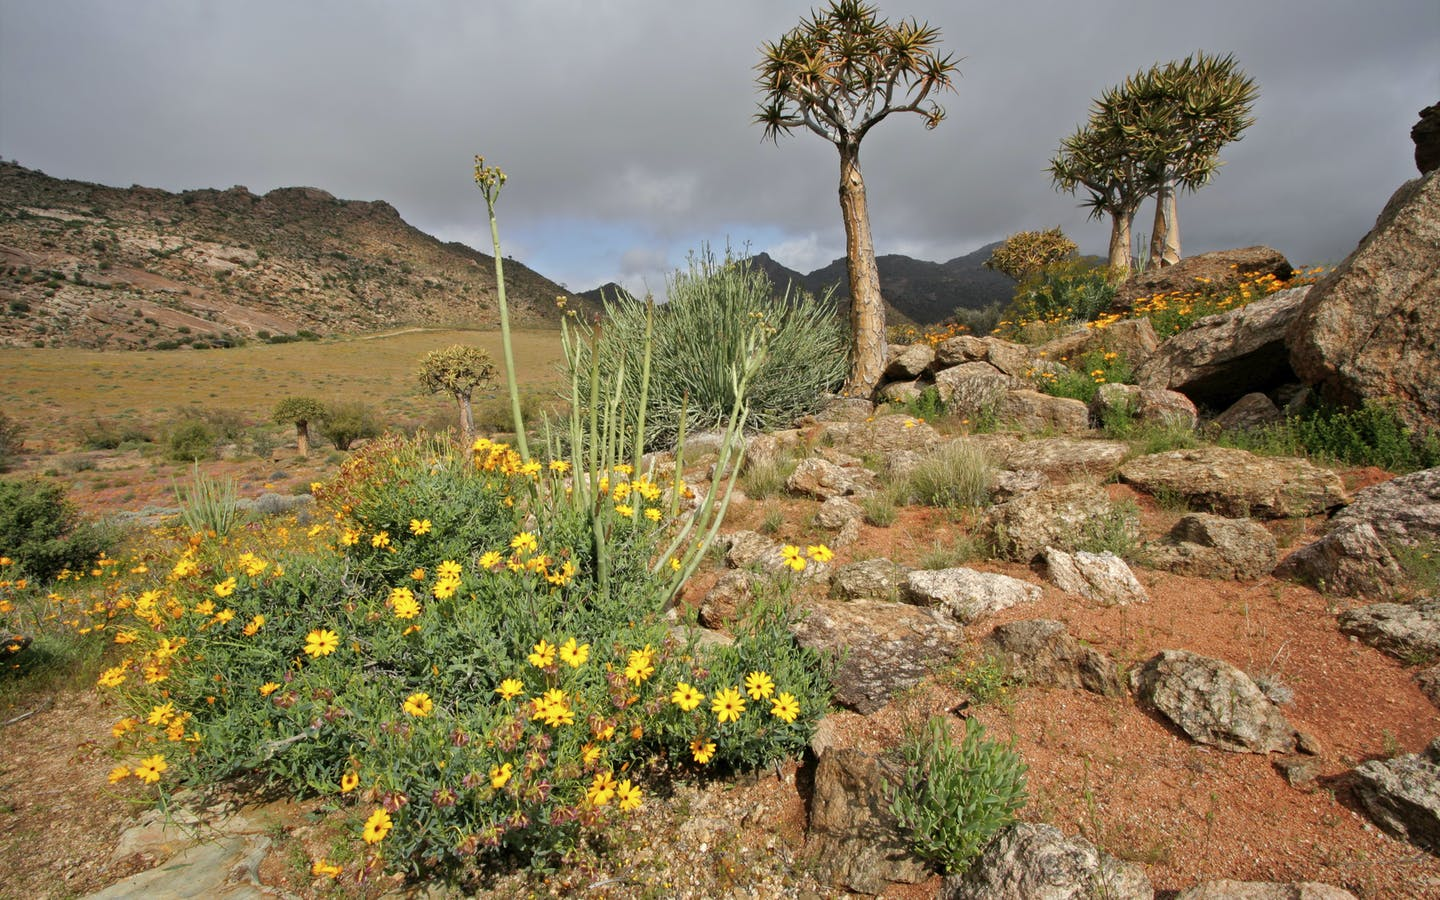 Landscape with wild flowers and quiver trees (Aloe dichotoma), Namaqualand, South Africa.